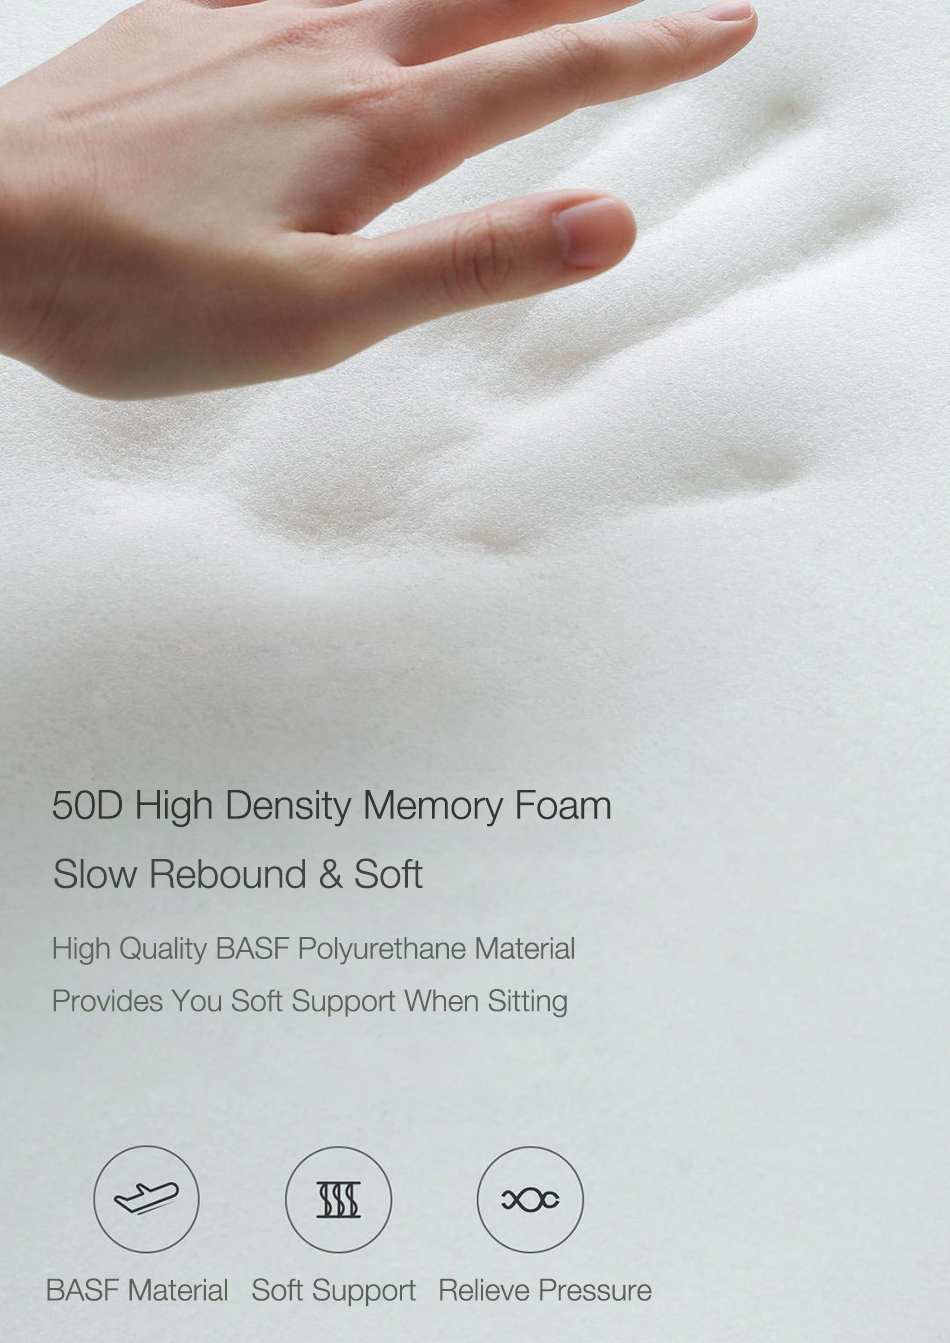 XIAOMI 8H Memory Foam Pillow Cotton Waist Pillow Multifunctional Office Travel Home Car Waist Protection Cushion